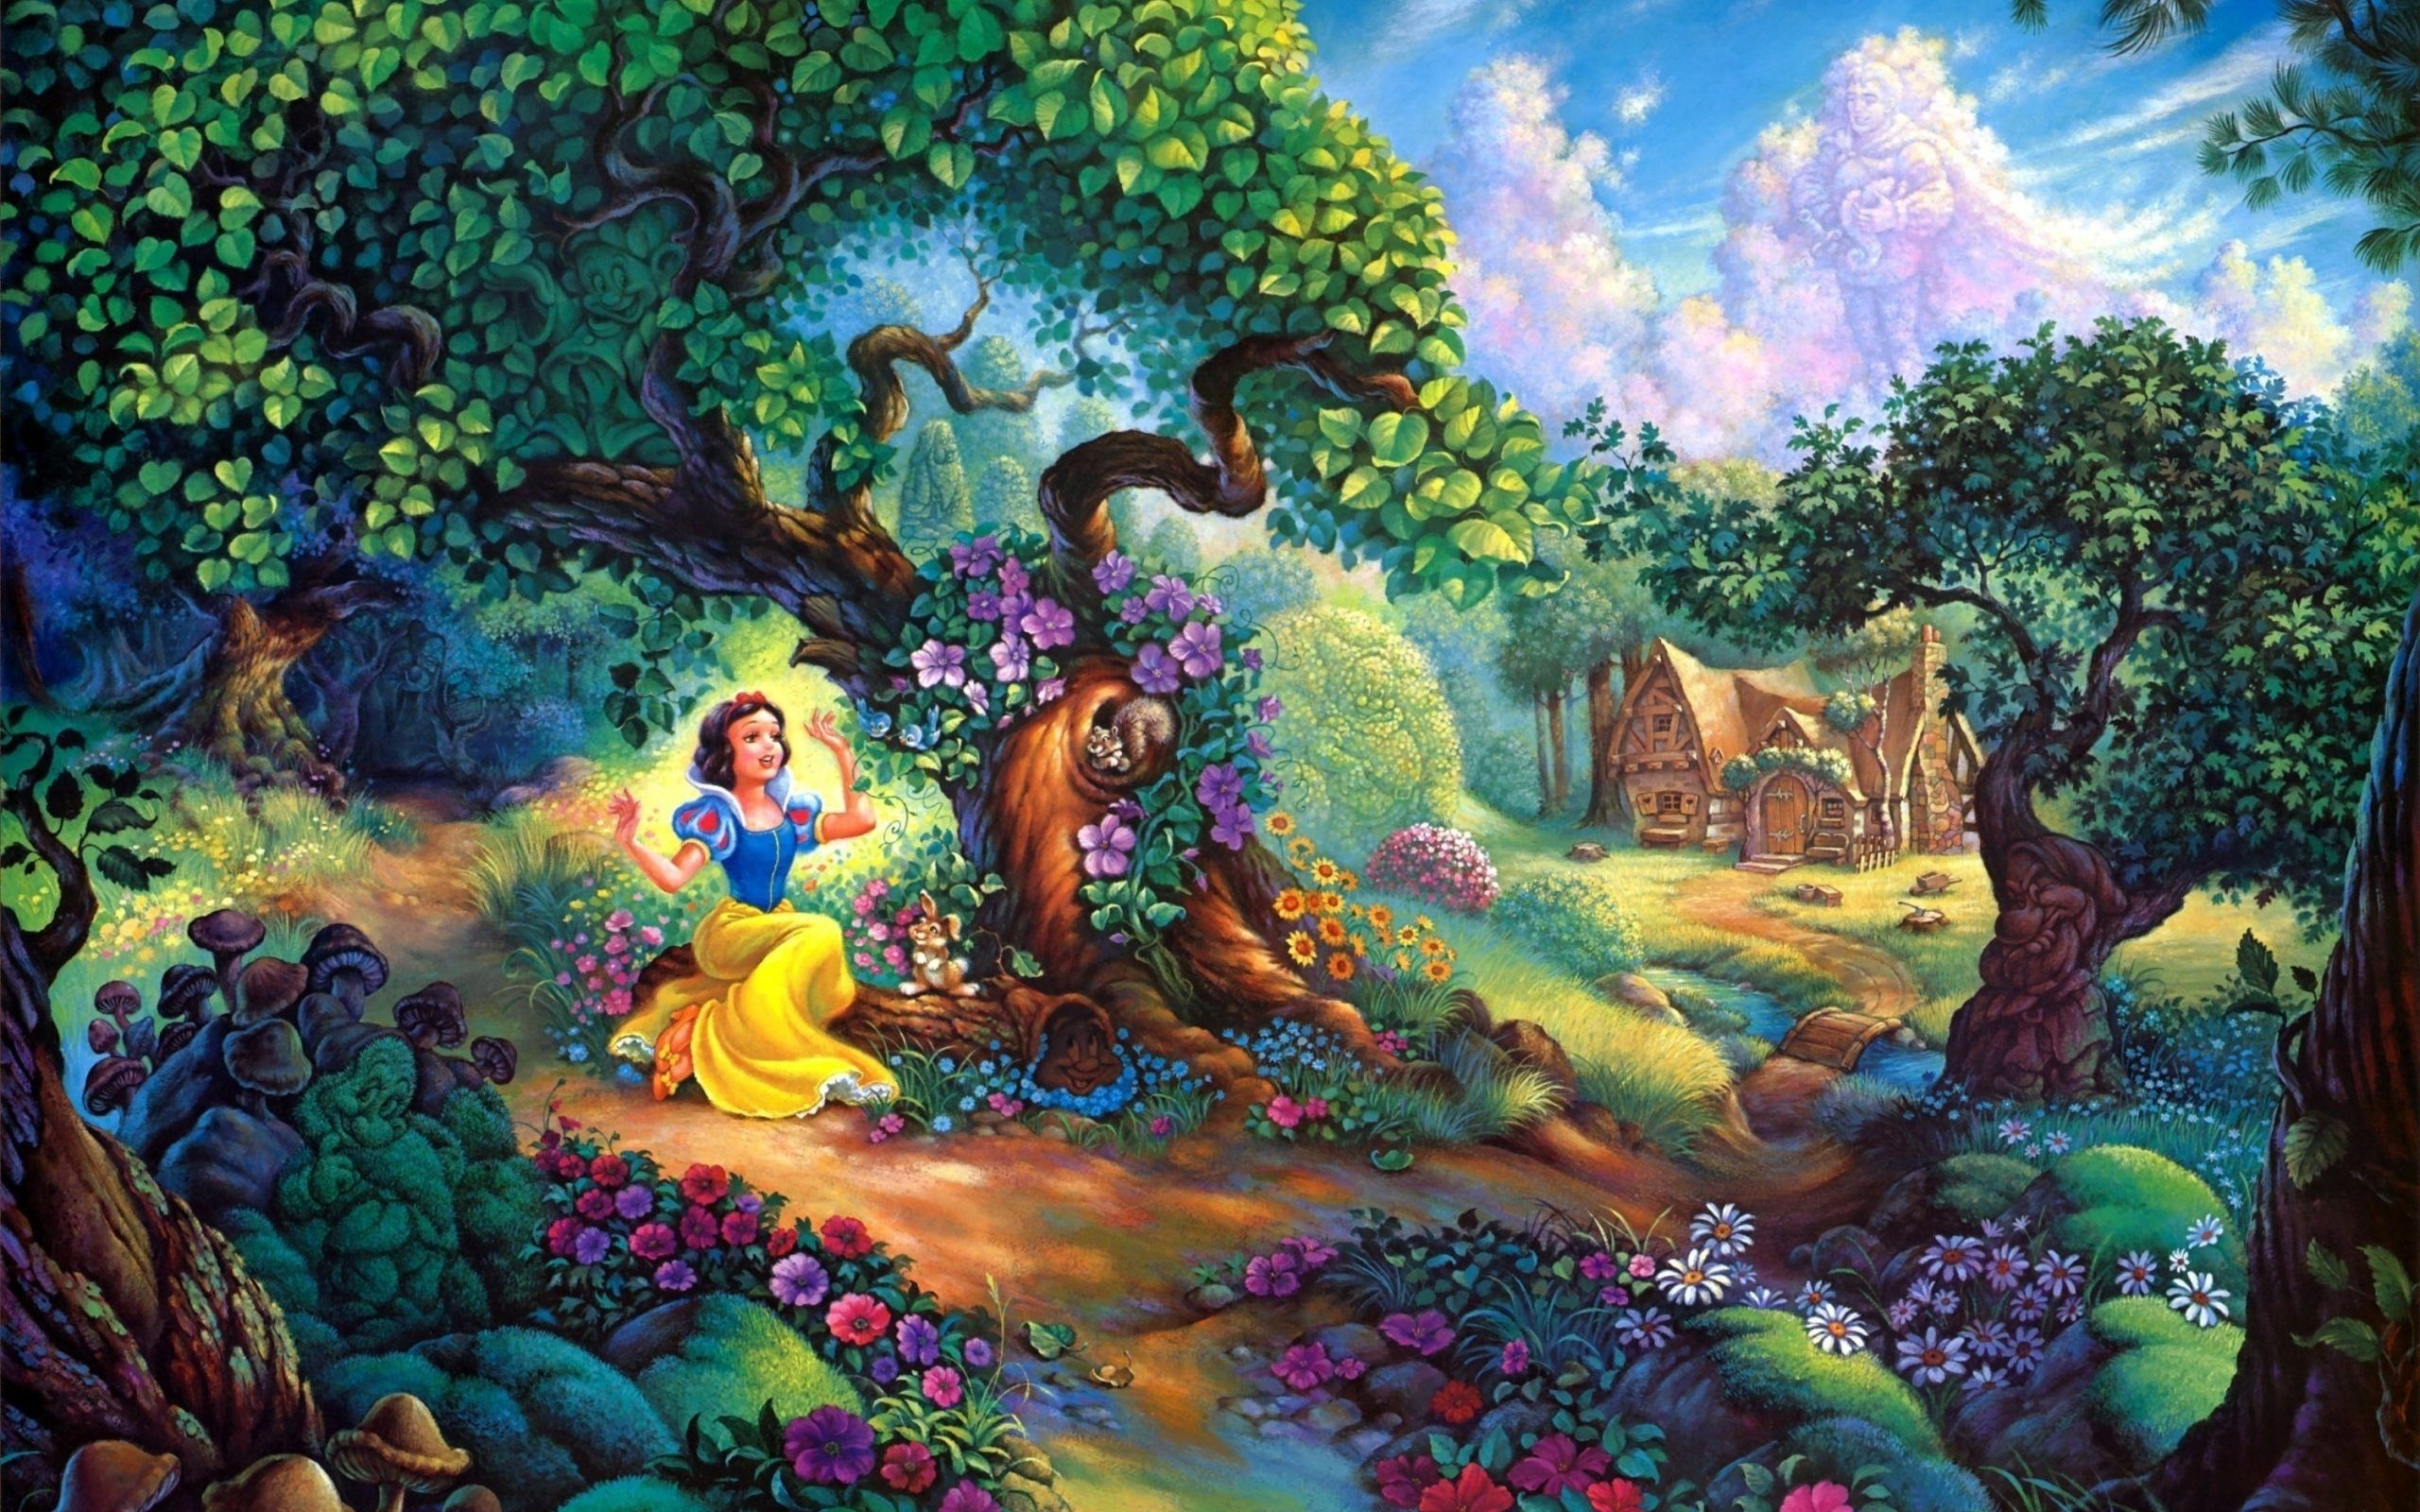 Download Free 50 Disney Wallpaper For Desktop The Quotes - Snow White Background - HD Wallpaper